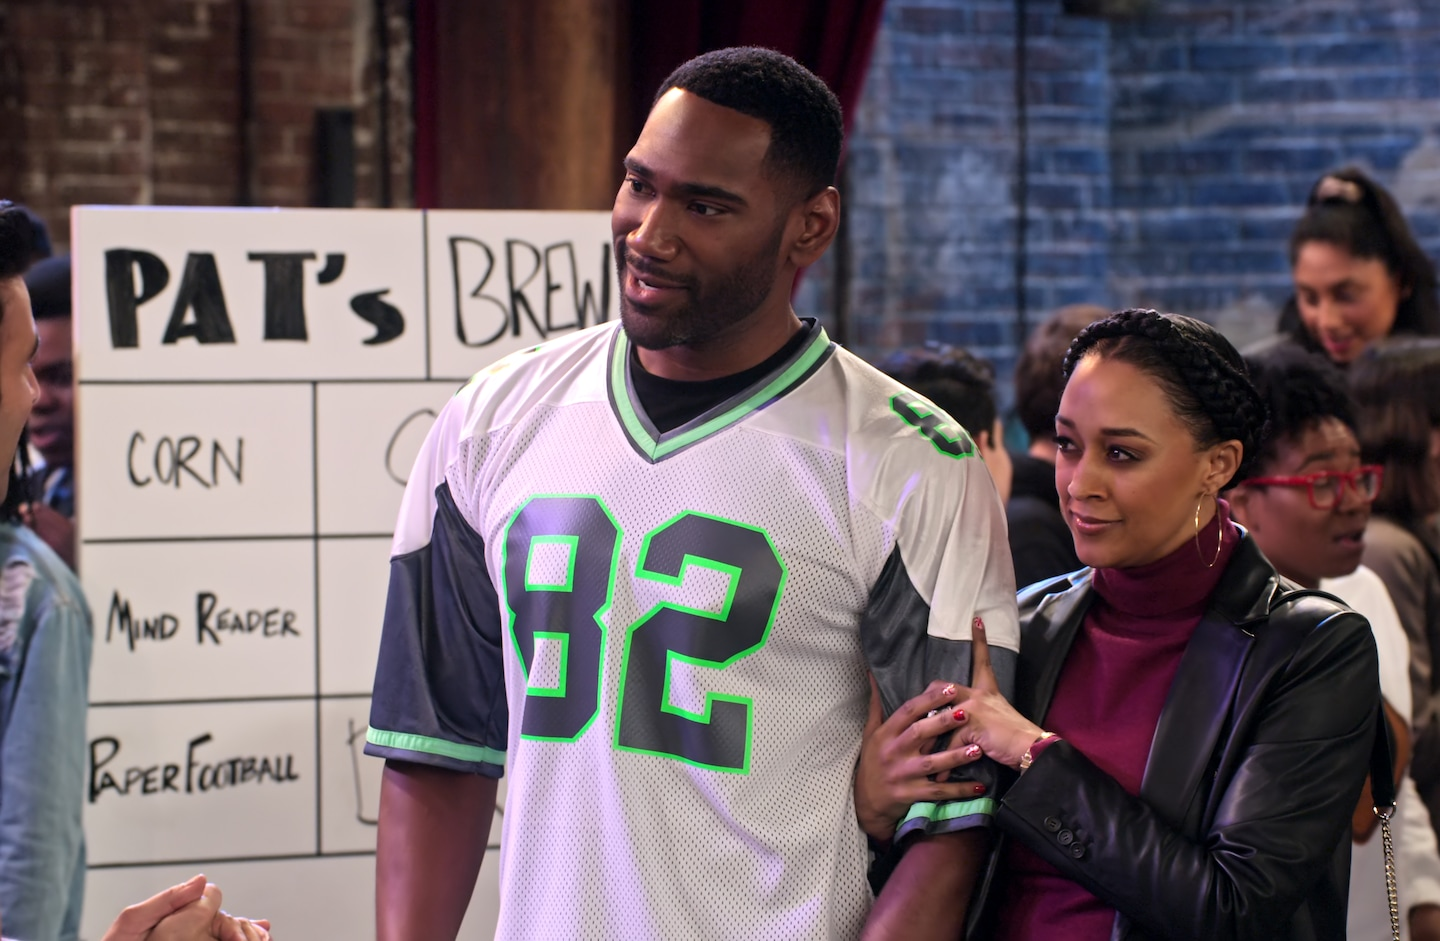 What to watch on Monday: 'Game On: A Comedy Crossover Event' on Netflix